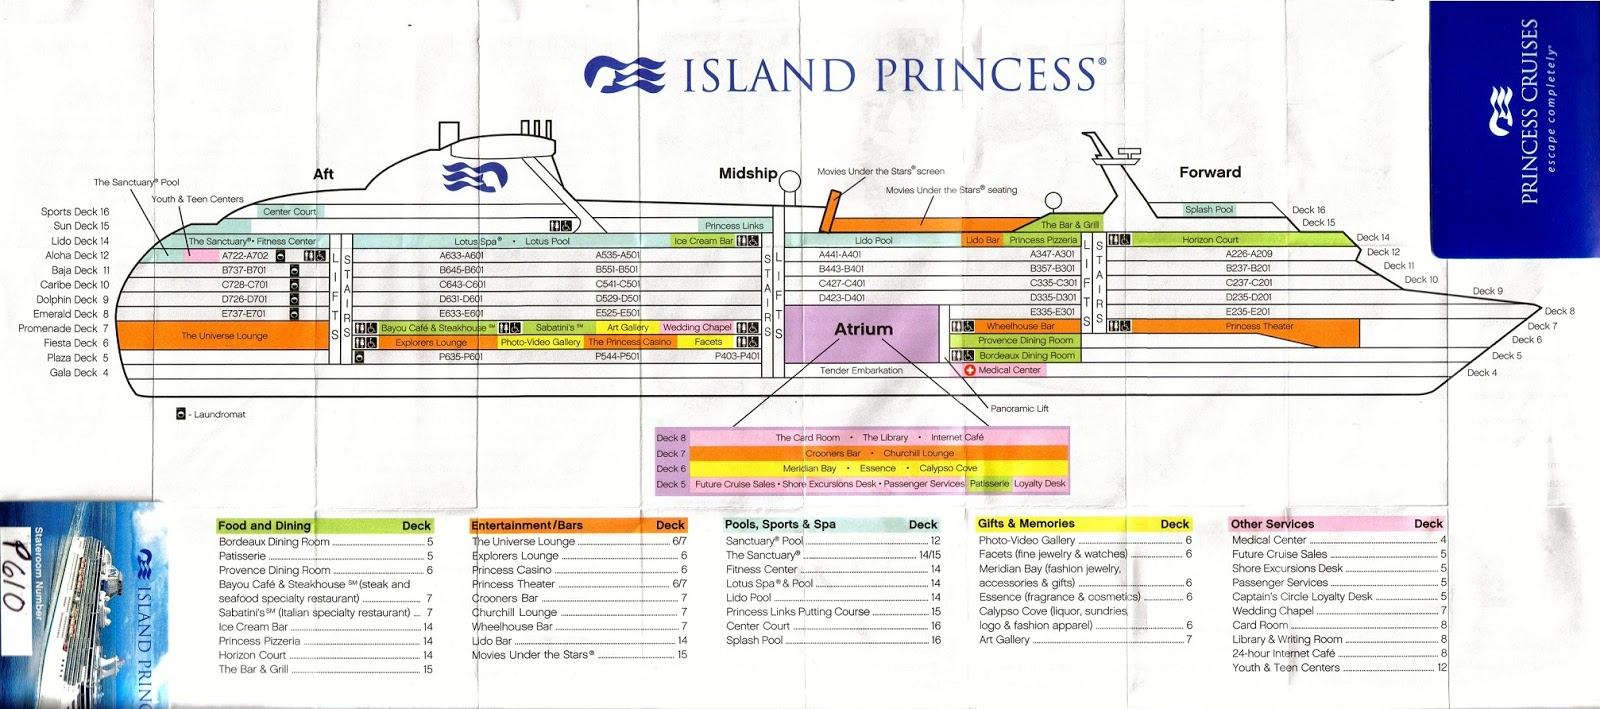 31 Perfect Island Princess Cruise Ship Deck Plan | Fitbudha.com